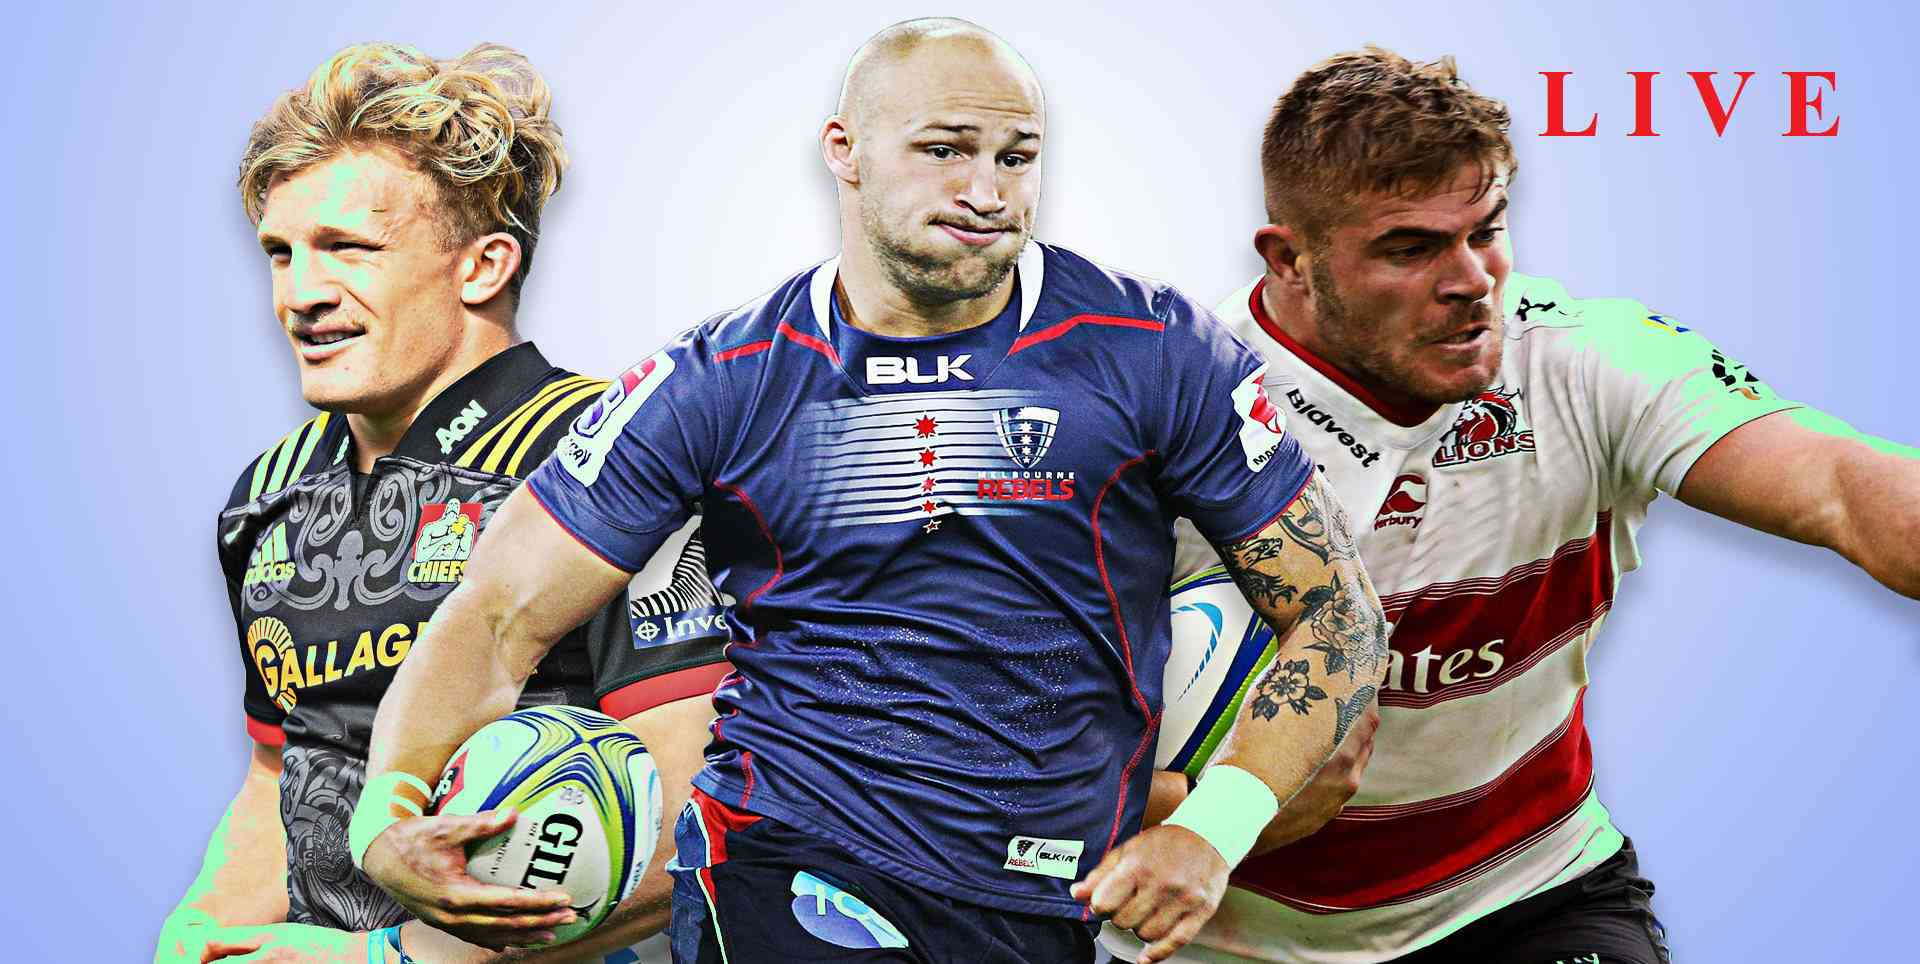 usa-vs-georgia-rugby-live